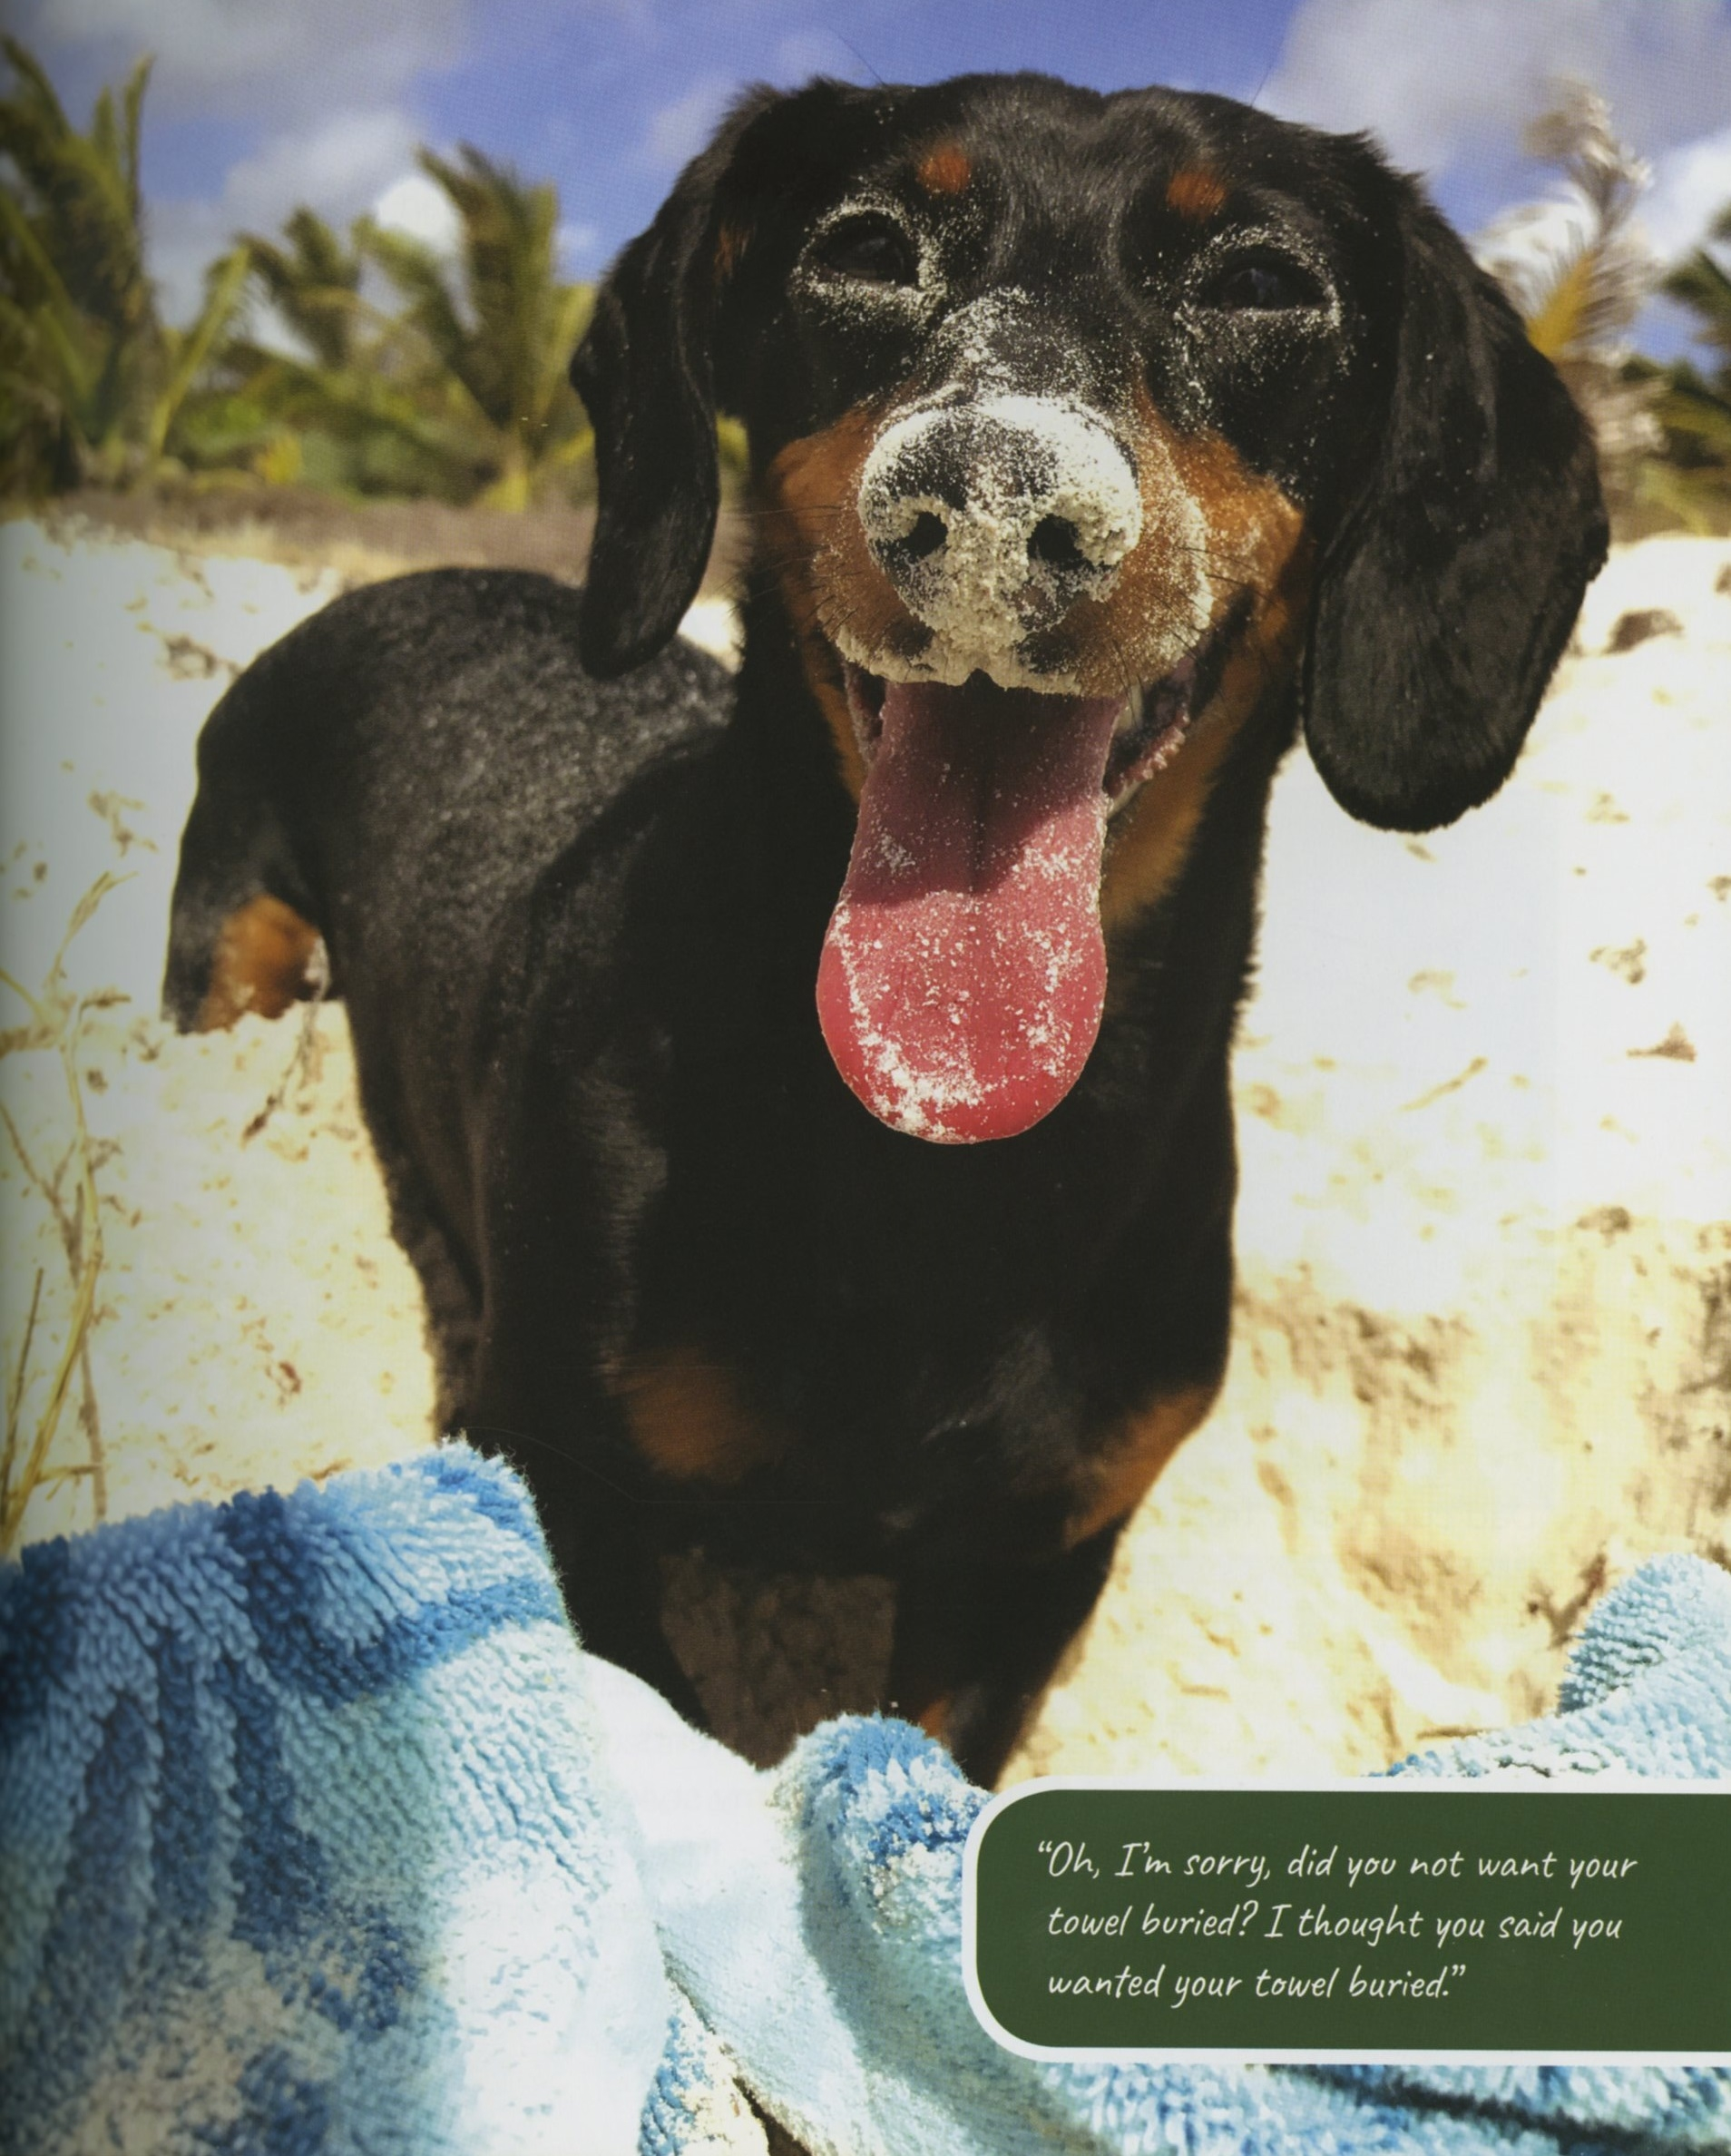 Interior book image for Crusoe, the Worldly Wiener Dog